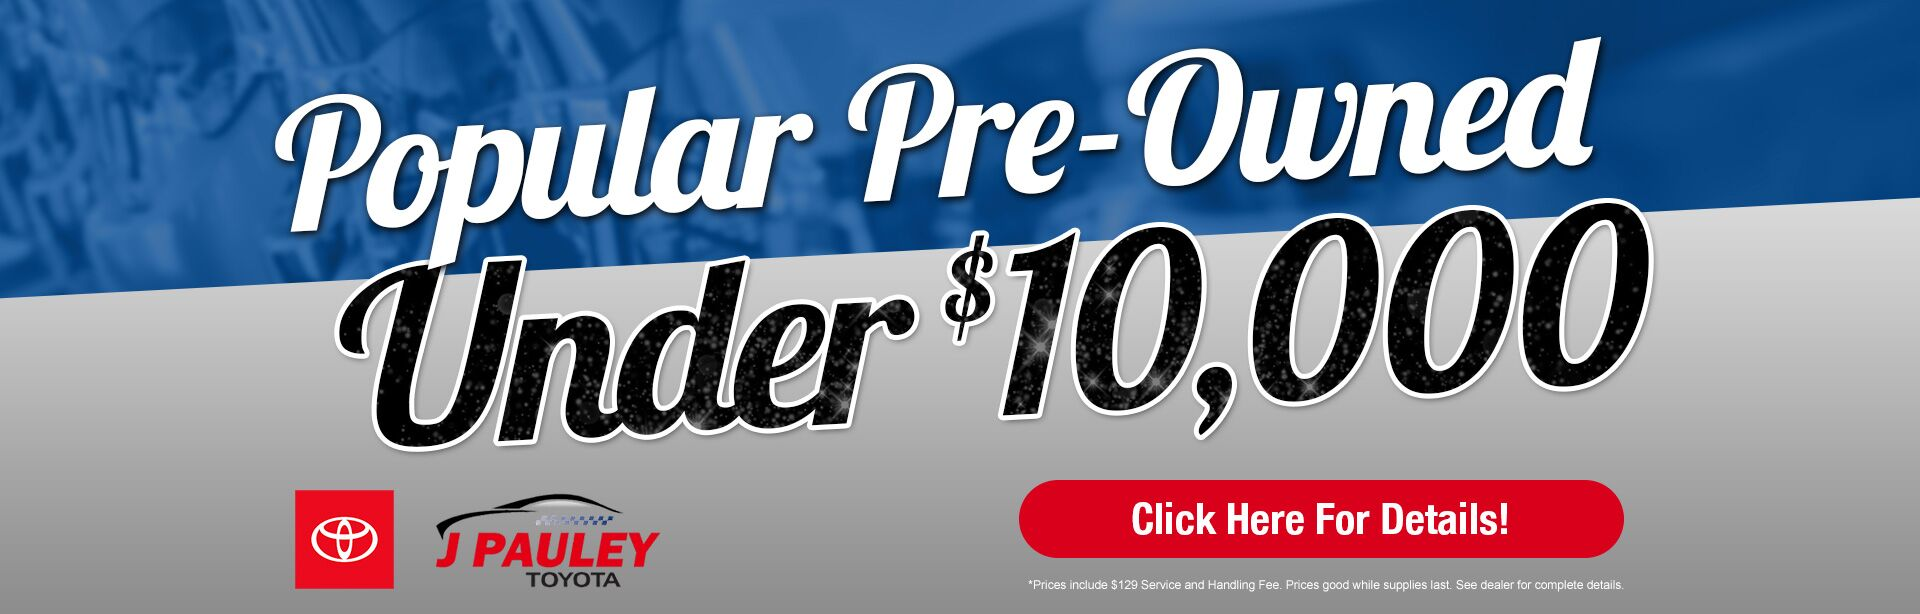 Click Here for details about our popular pre-owned vehicles under $10,000